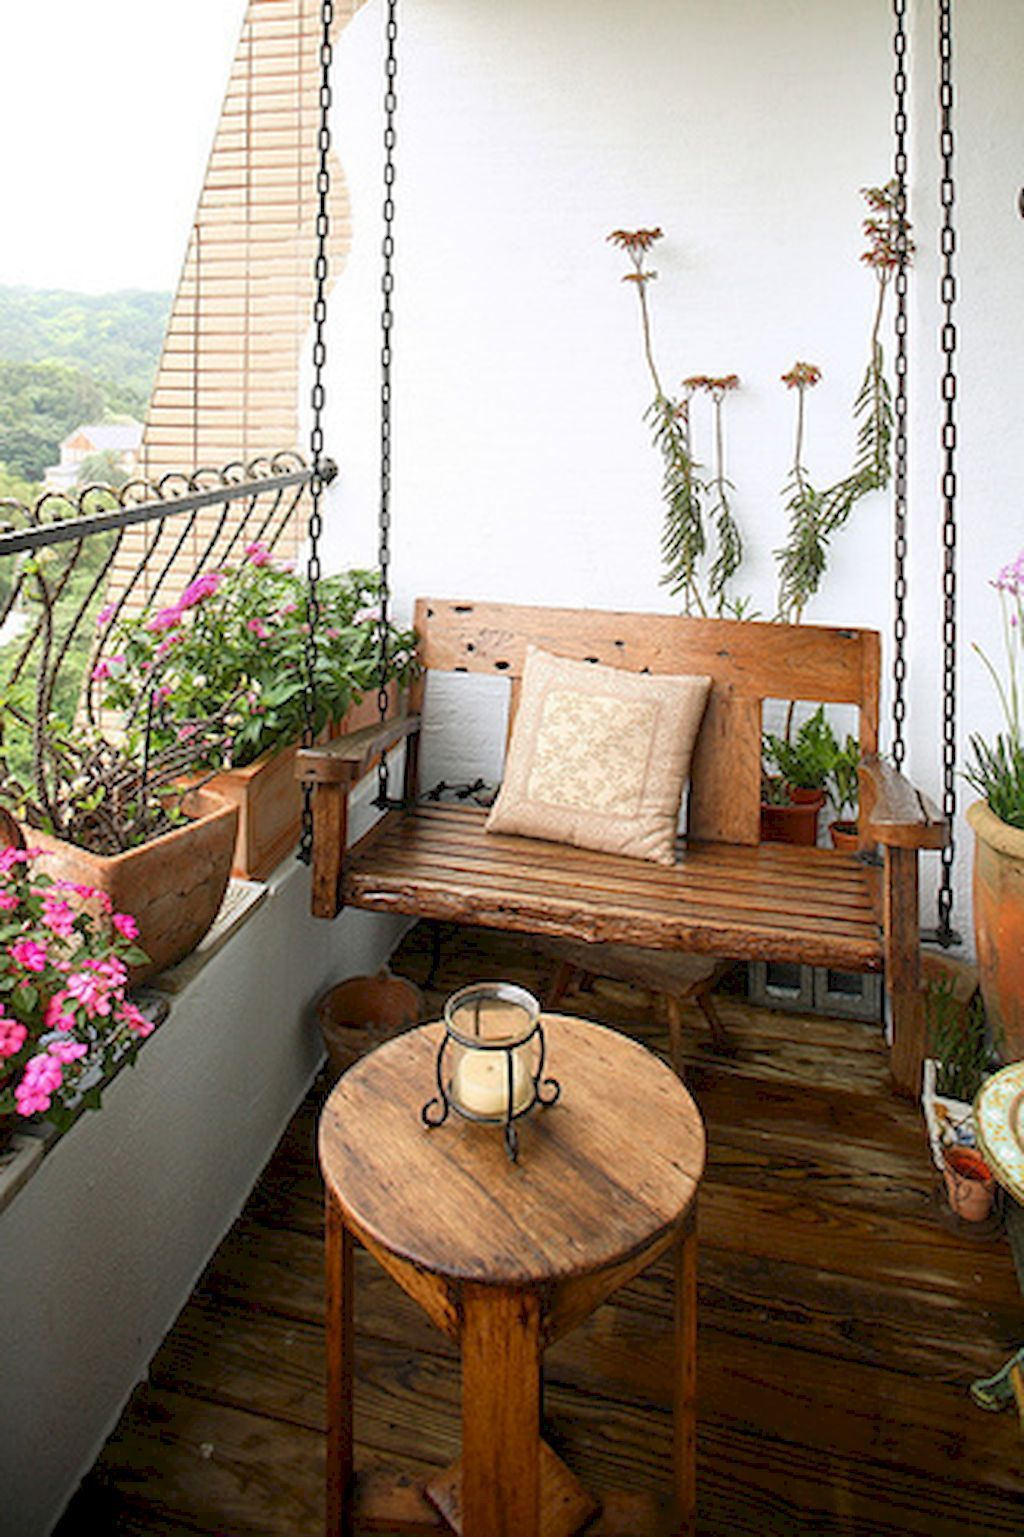 Balcony furniture to make the best use of extra space!